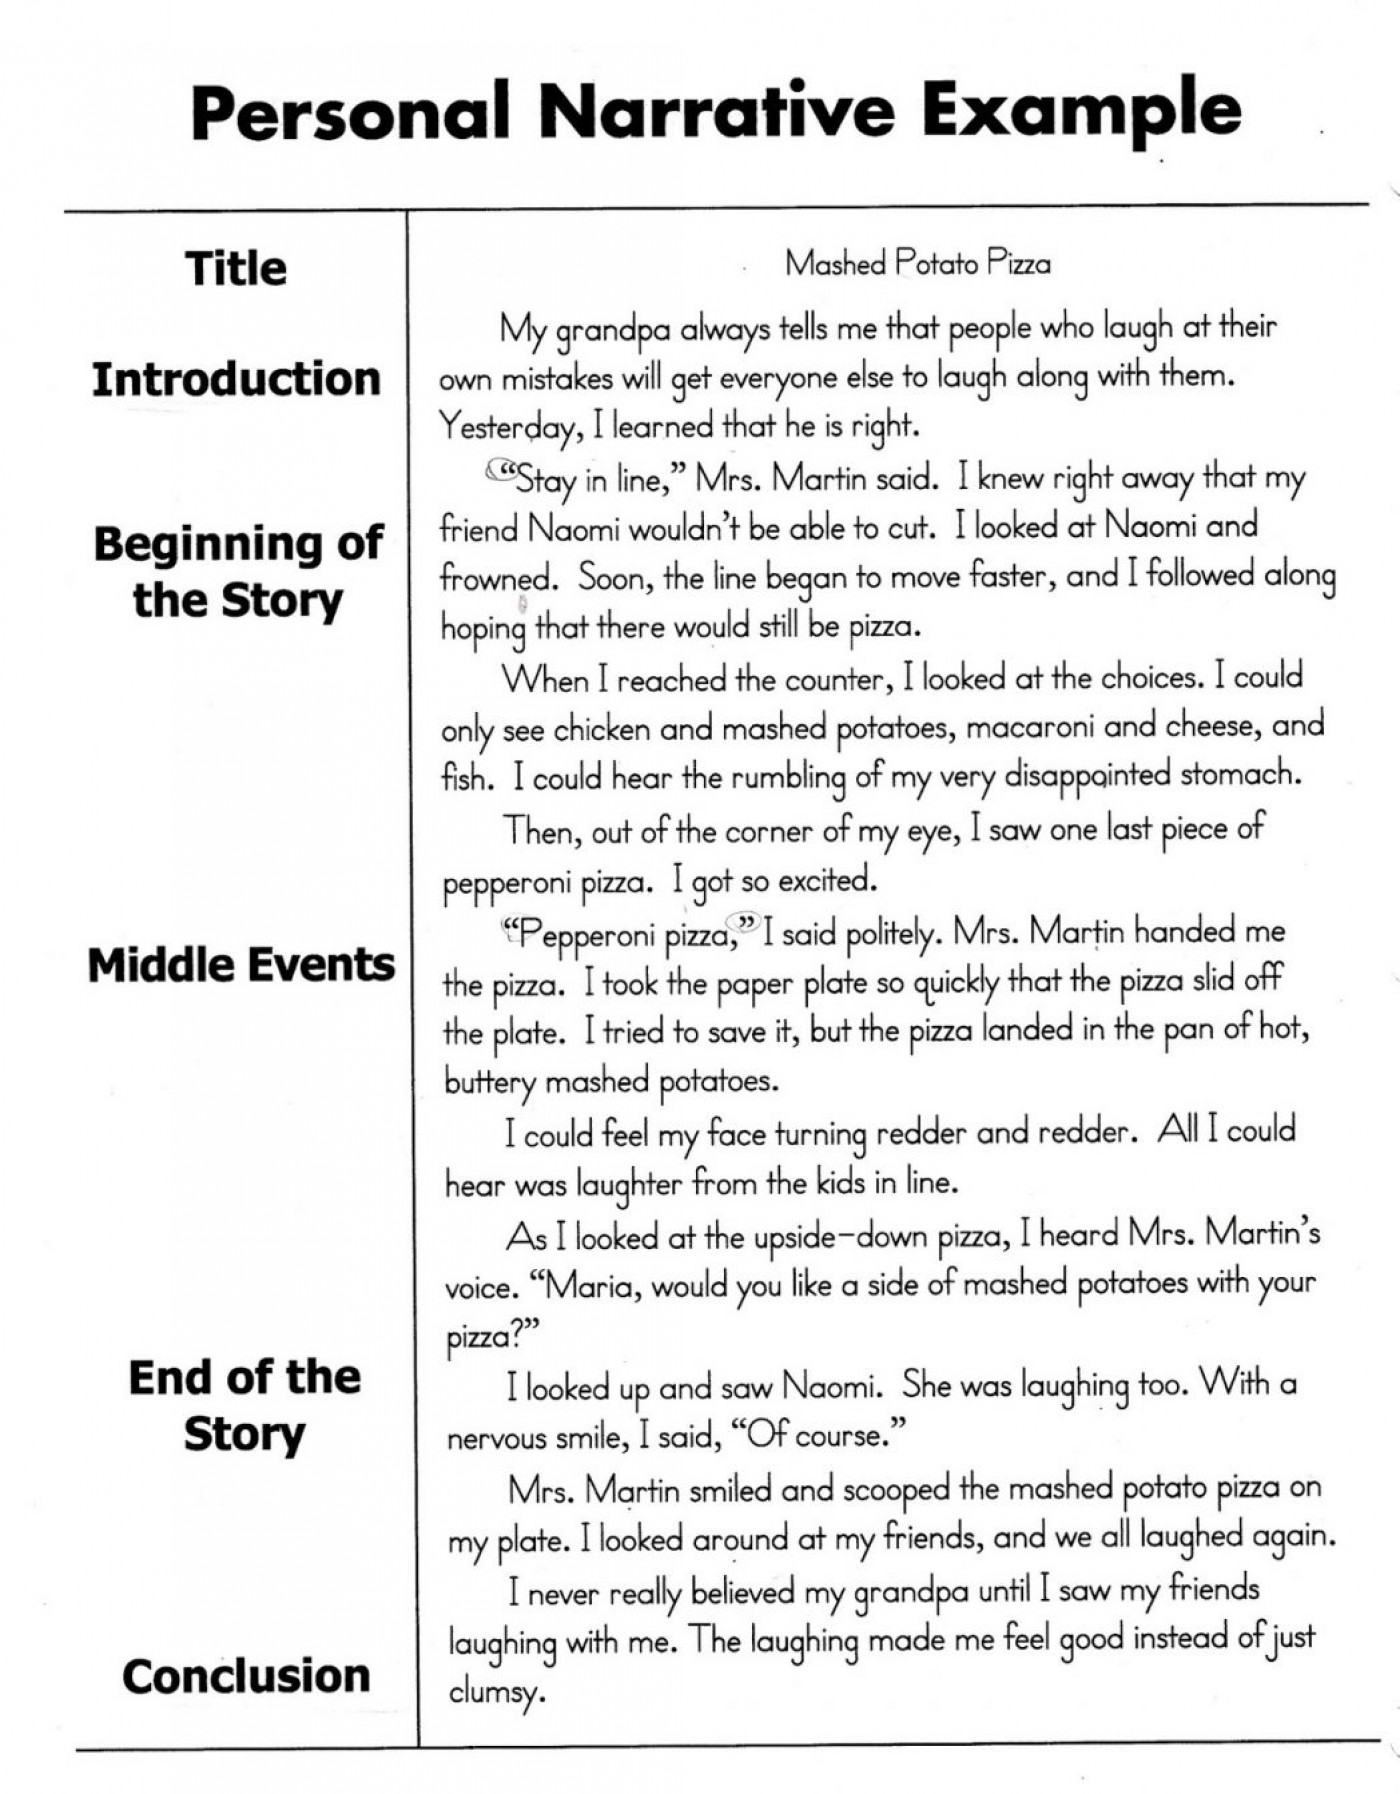 008 Good Narrative Essay Topics Macbeth Topic Sample High School For College Students Personal Prompts 1048x1343 Stirring Descriptive Grade 8 1400